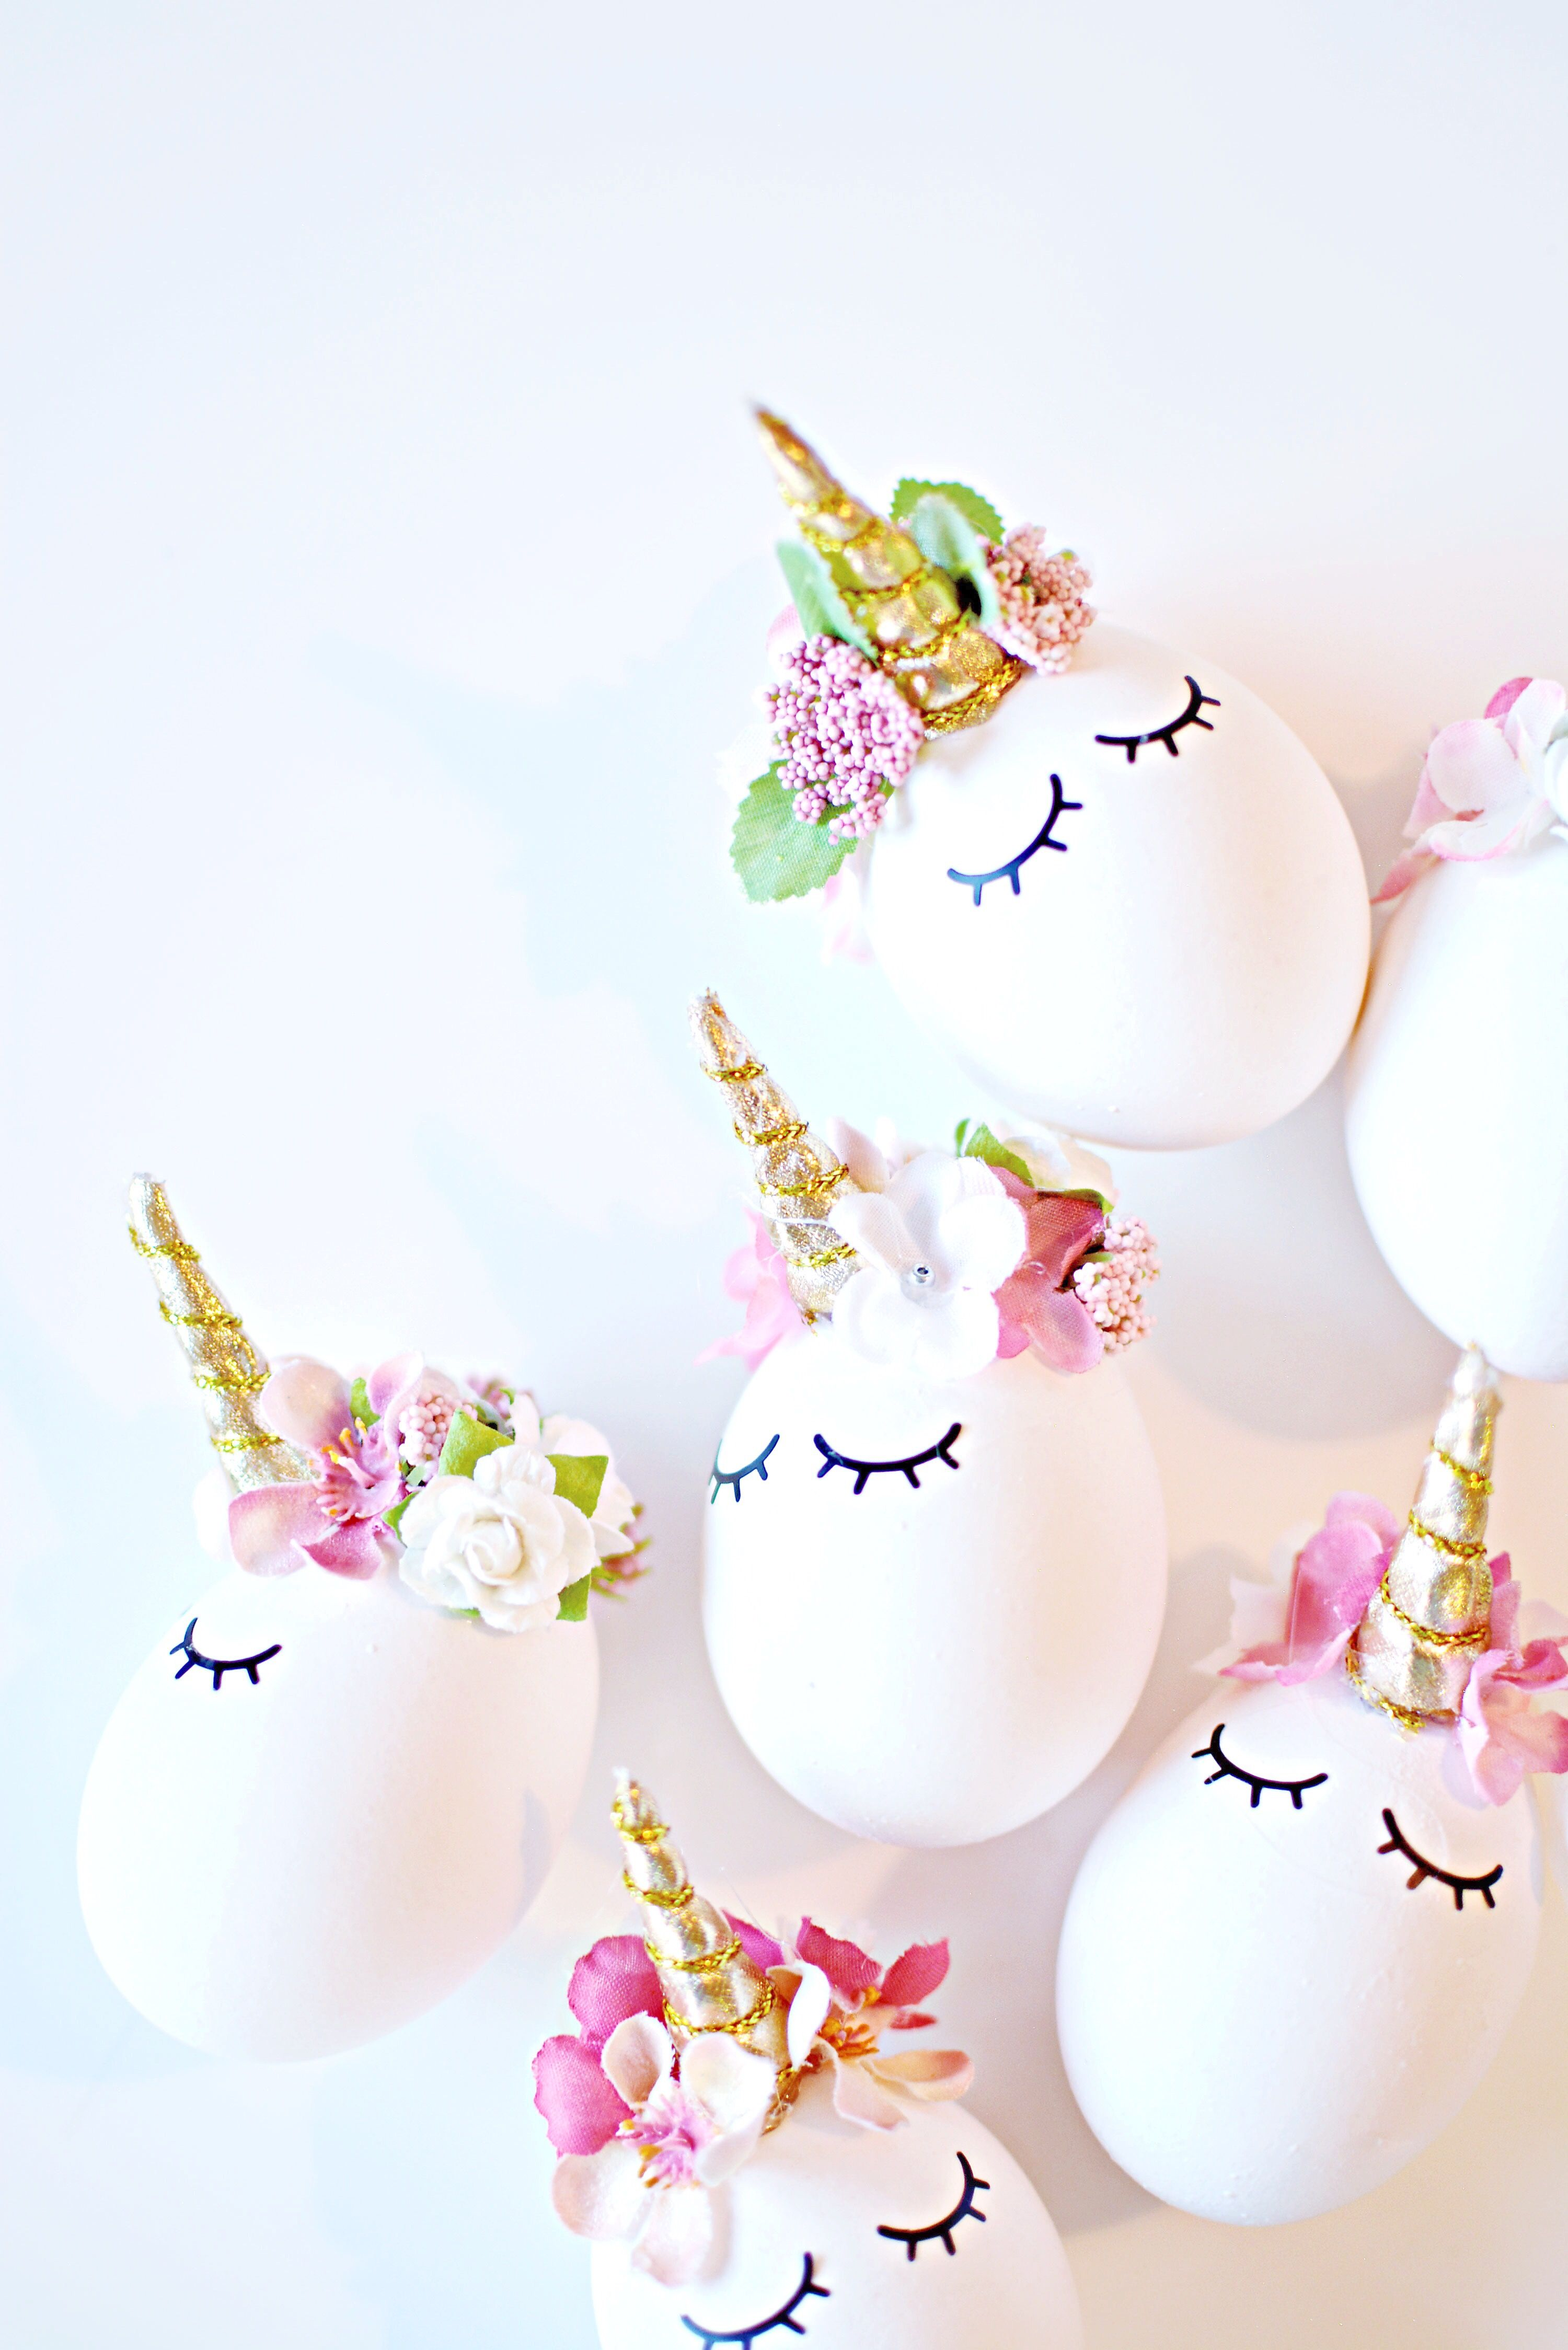 Blog post at little inspiration are you on the unicorn trend yet blog post at little inspiration are you on the unicorn trend yet those unicorn negle Choice Image